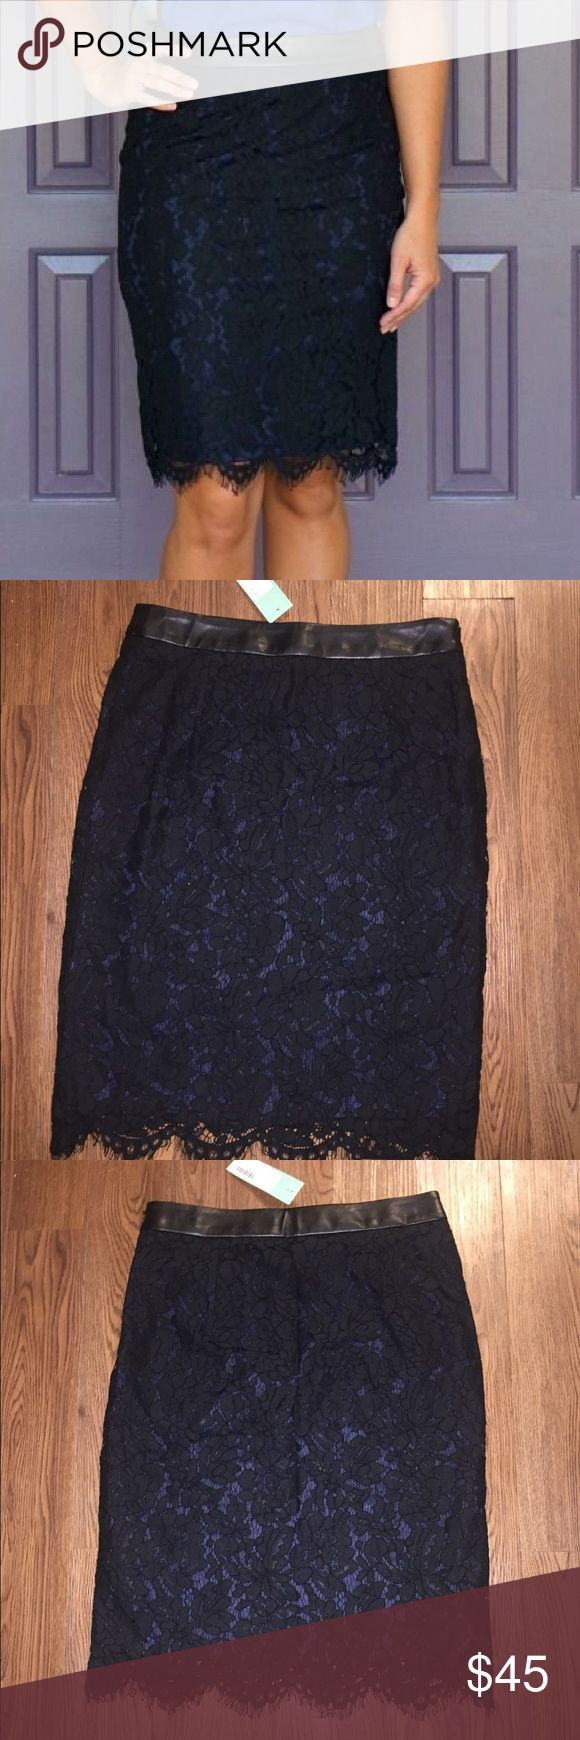 NWT Stitch Fix Briton Ivy Cyndi Lace Pencil Skirt Stitch Fix Brixon Ivy Black Pencil Skirt, NWT, Size Small, Black lace overlay navy pencil skirt in perfect condition! Brixon Ivy Skirts Pencil